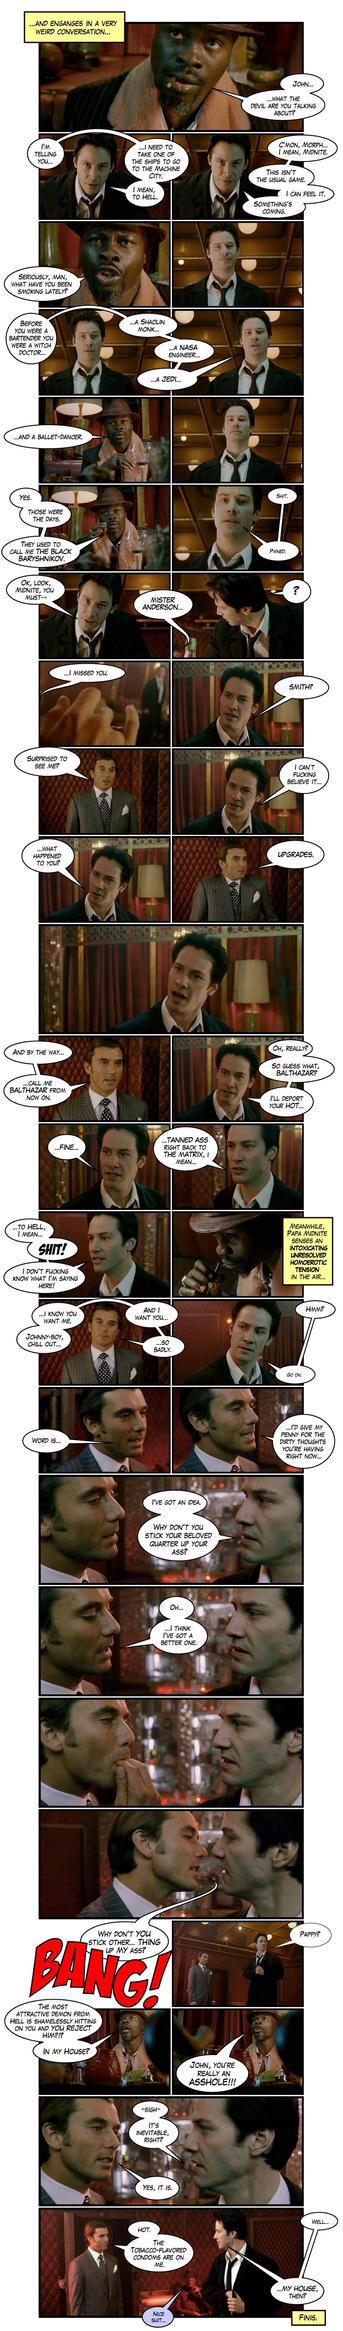 Constantine Webcomic - Part II by TheFlyingBeet